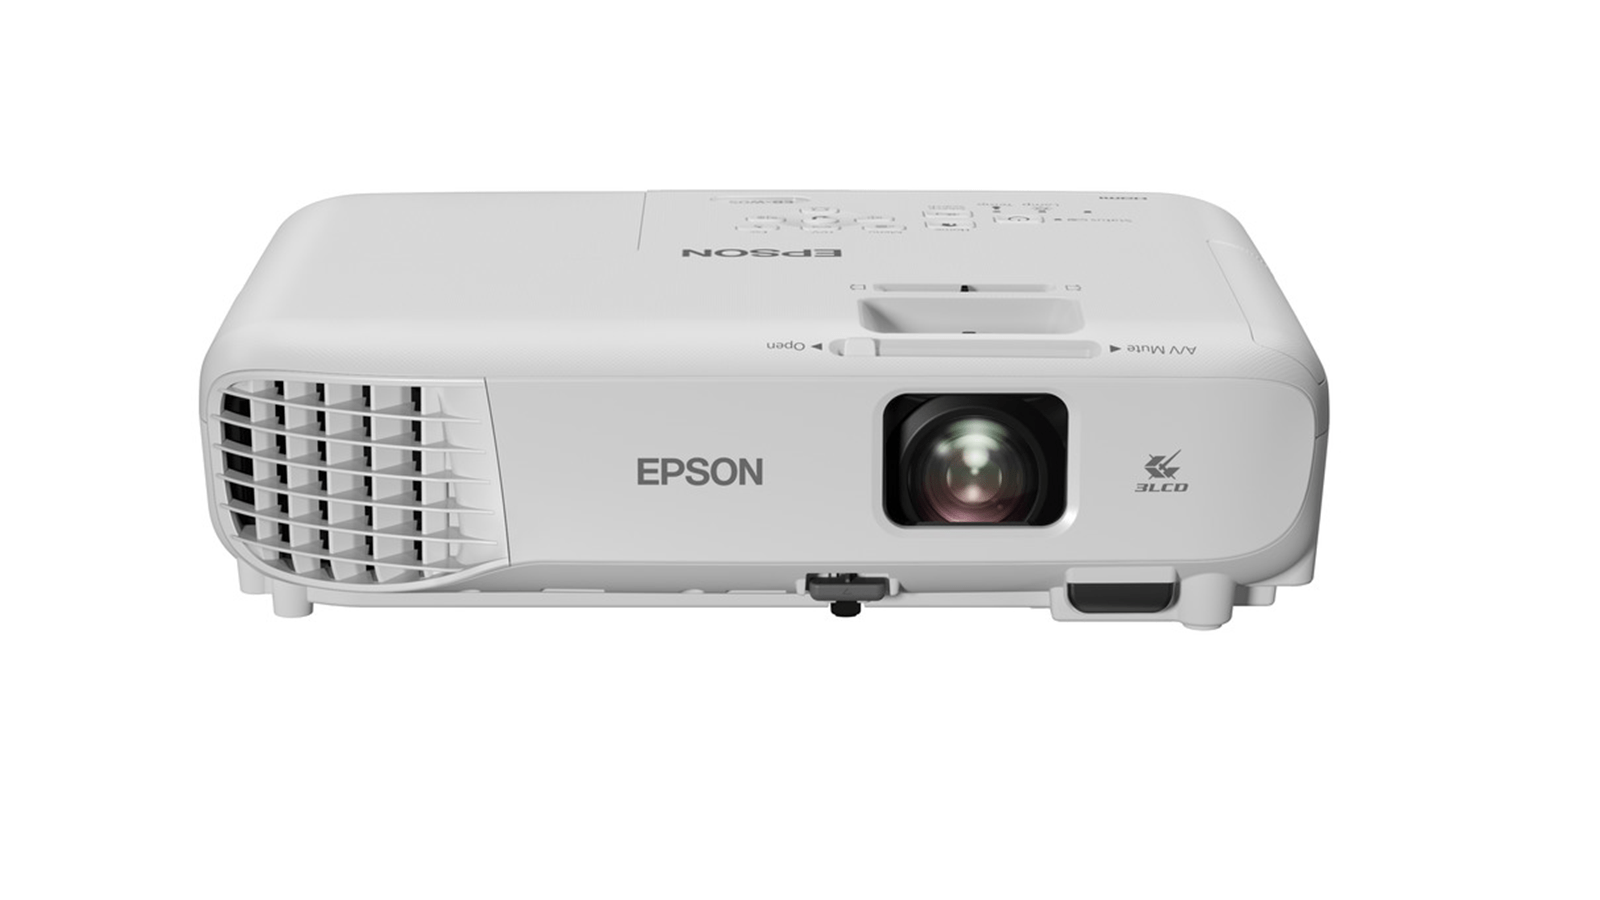 recliner sofa in malaysia cleaning birmingham uk epson eb-w05 projector   harvey norman